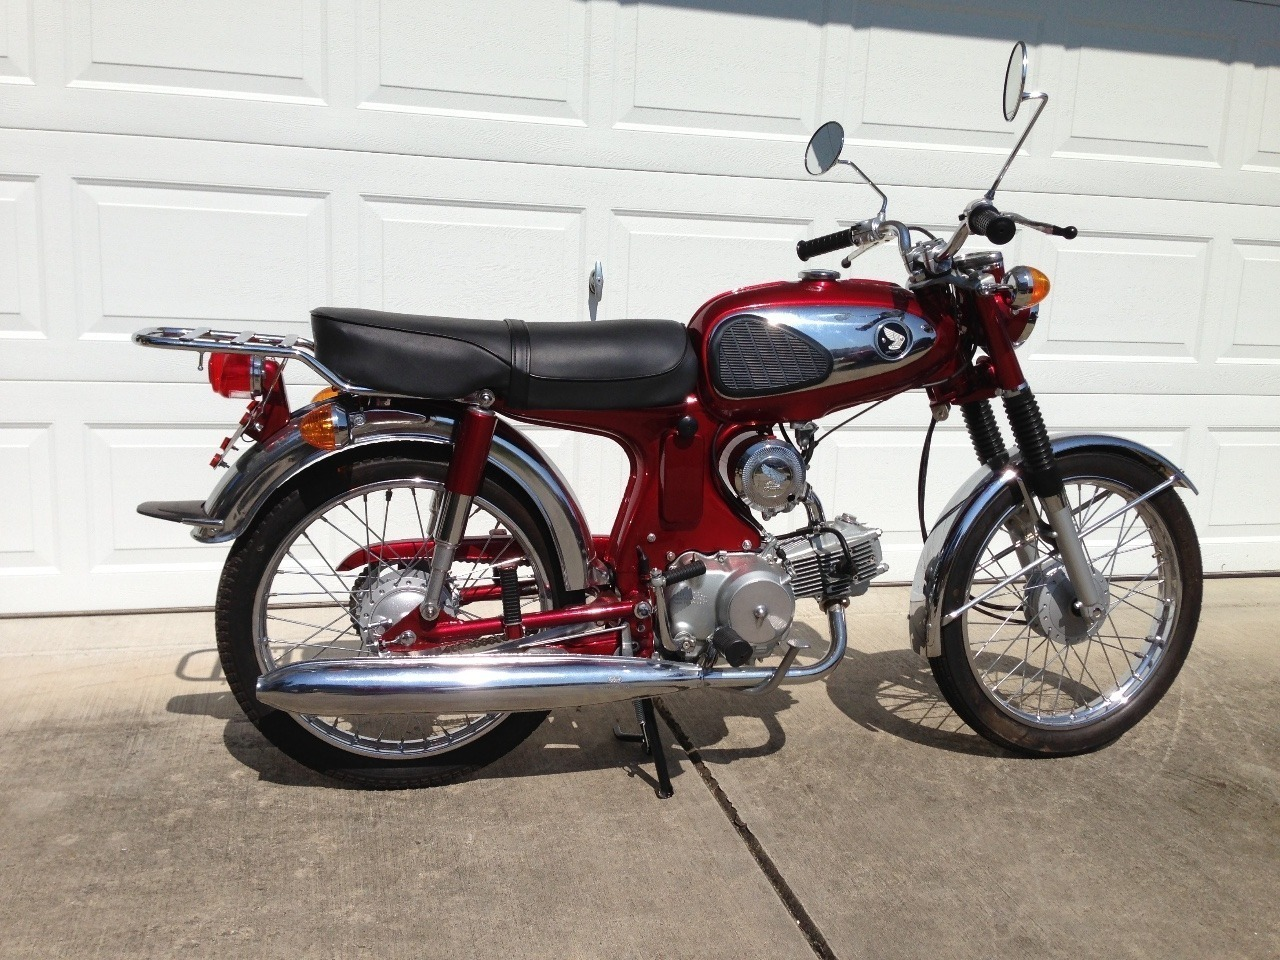 1968 Honda S 90 Pics Specs And Information Motorcycles Wallpapers 141915